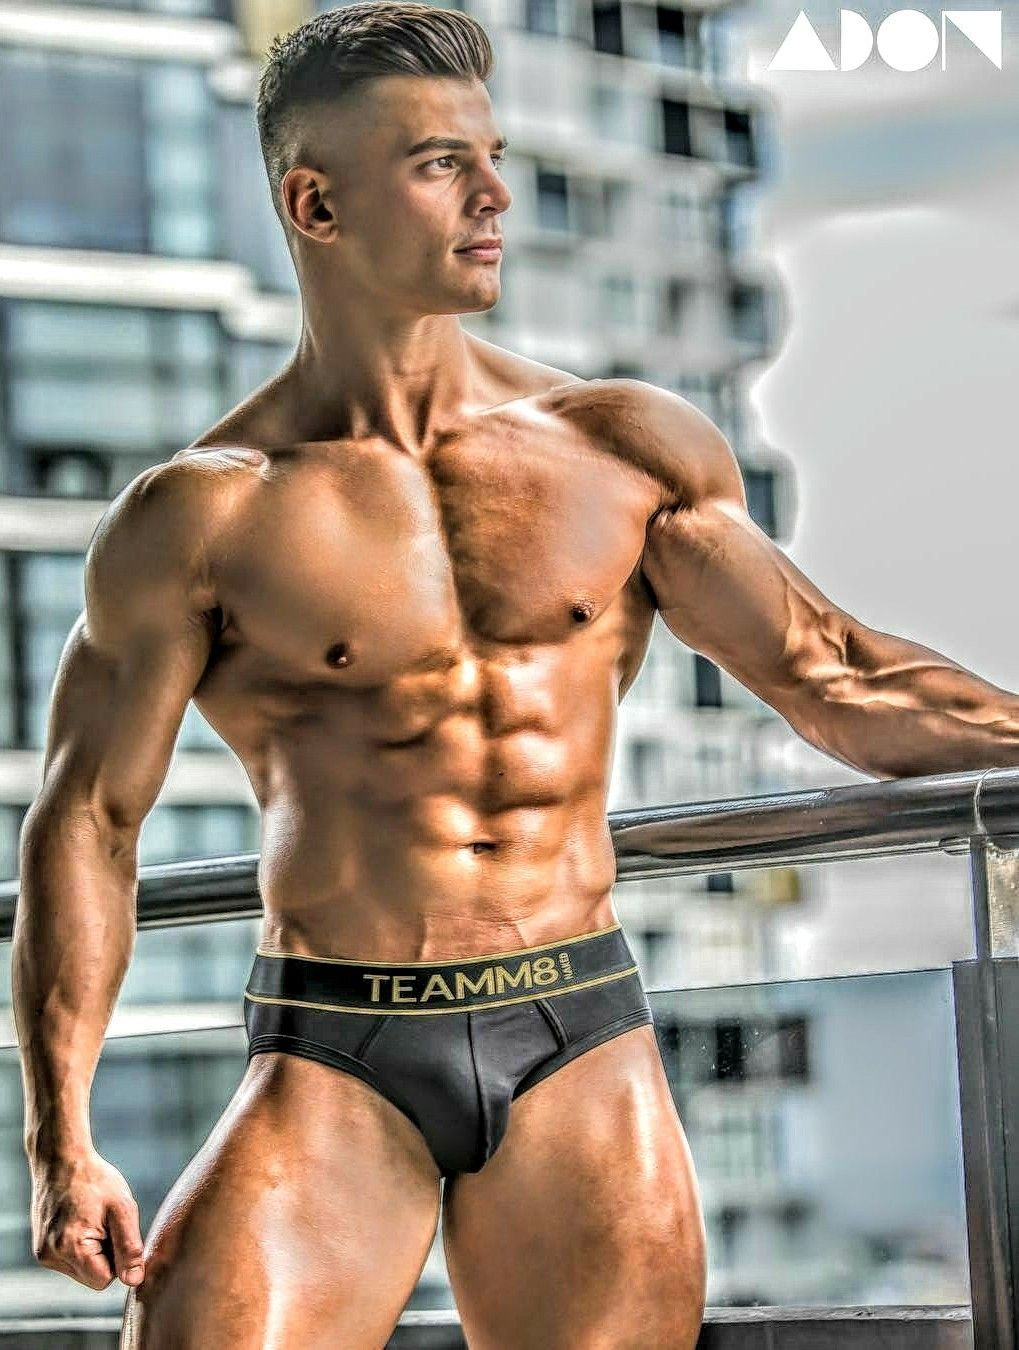 Mens Undies Mens Underwear Muscular Men Male Physique Perfect Man Man